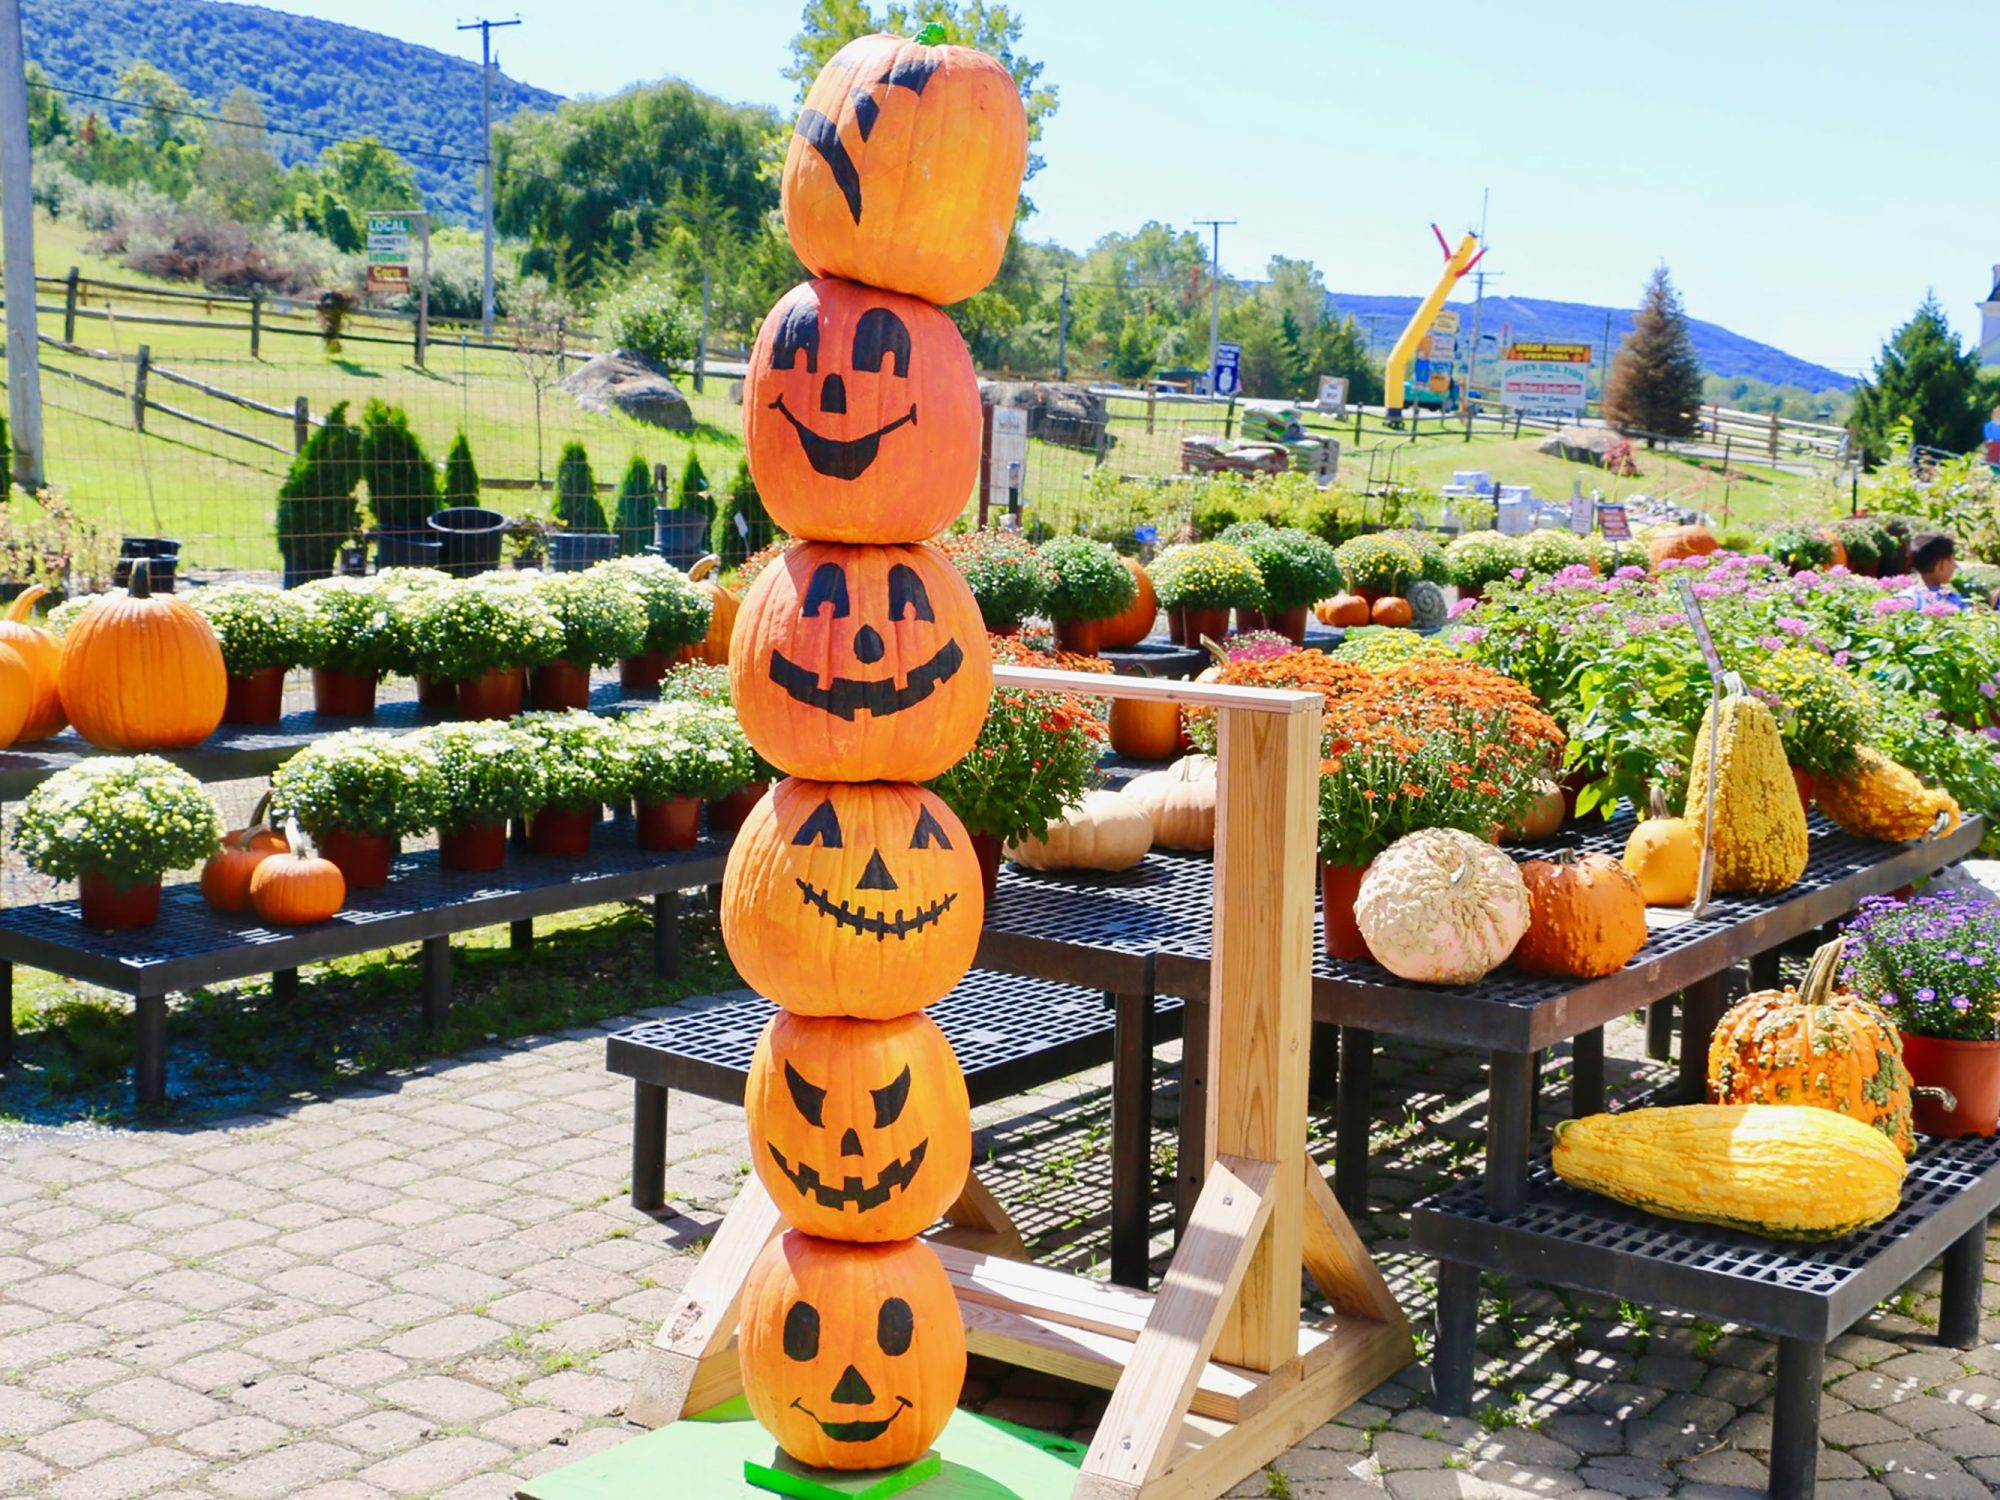 Pumpkins at Heaven Hill Farm